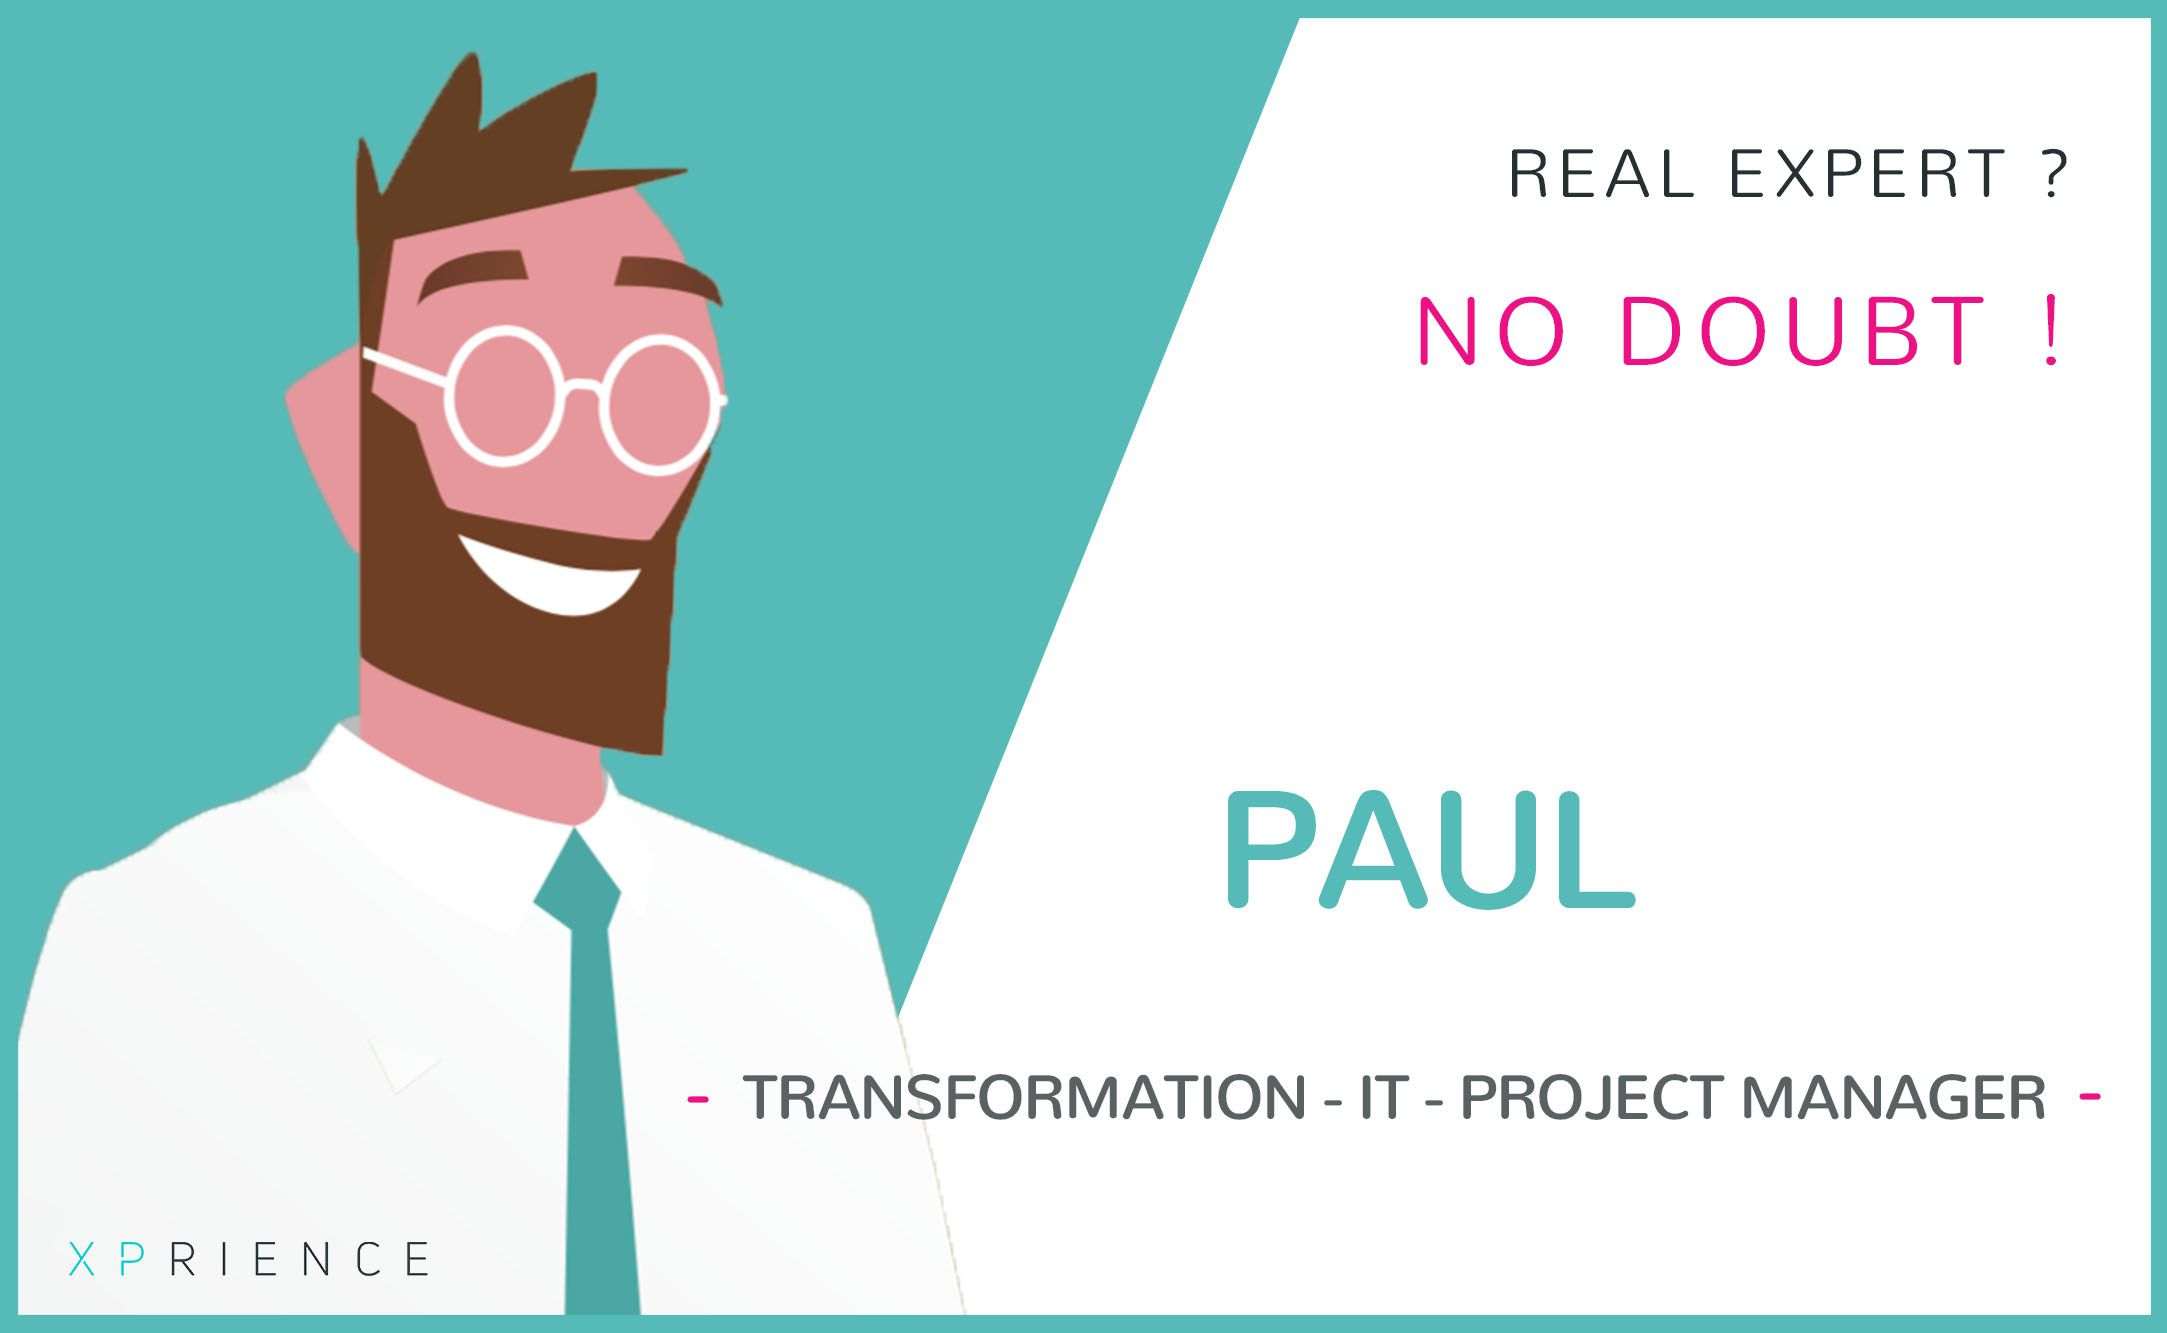 transformation - IT - project manager